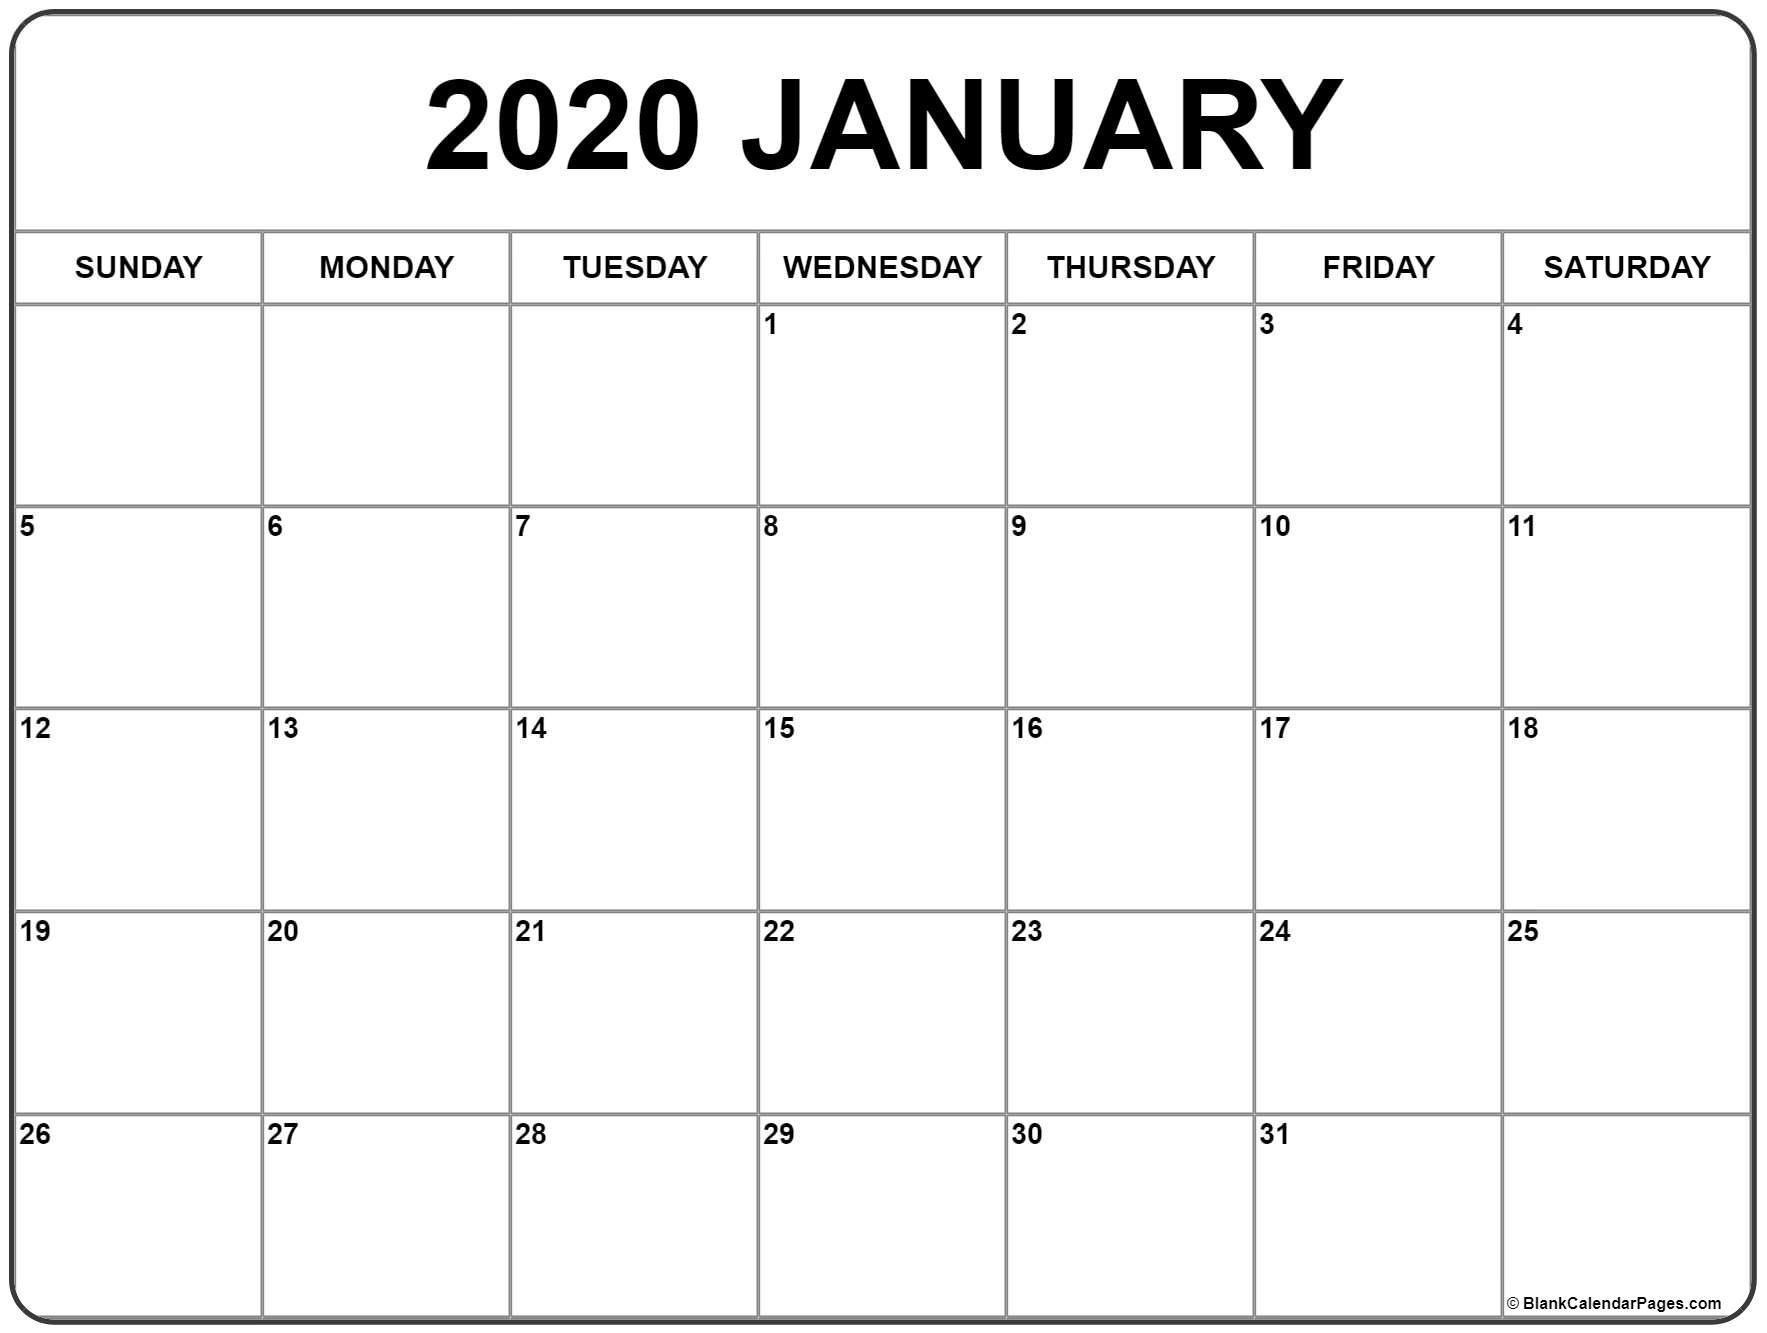 January 2020 Calendar | Free Printable Monthly Calendars-Free Printable Blank Single Page Month Calendar